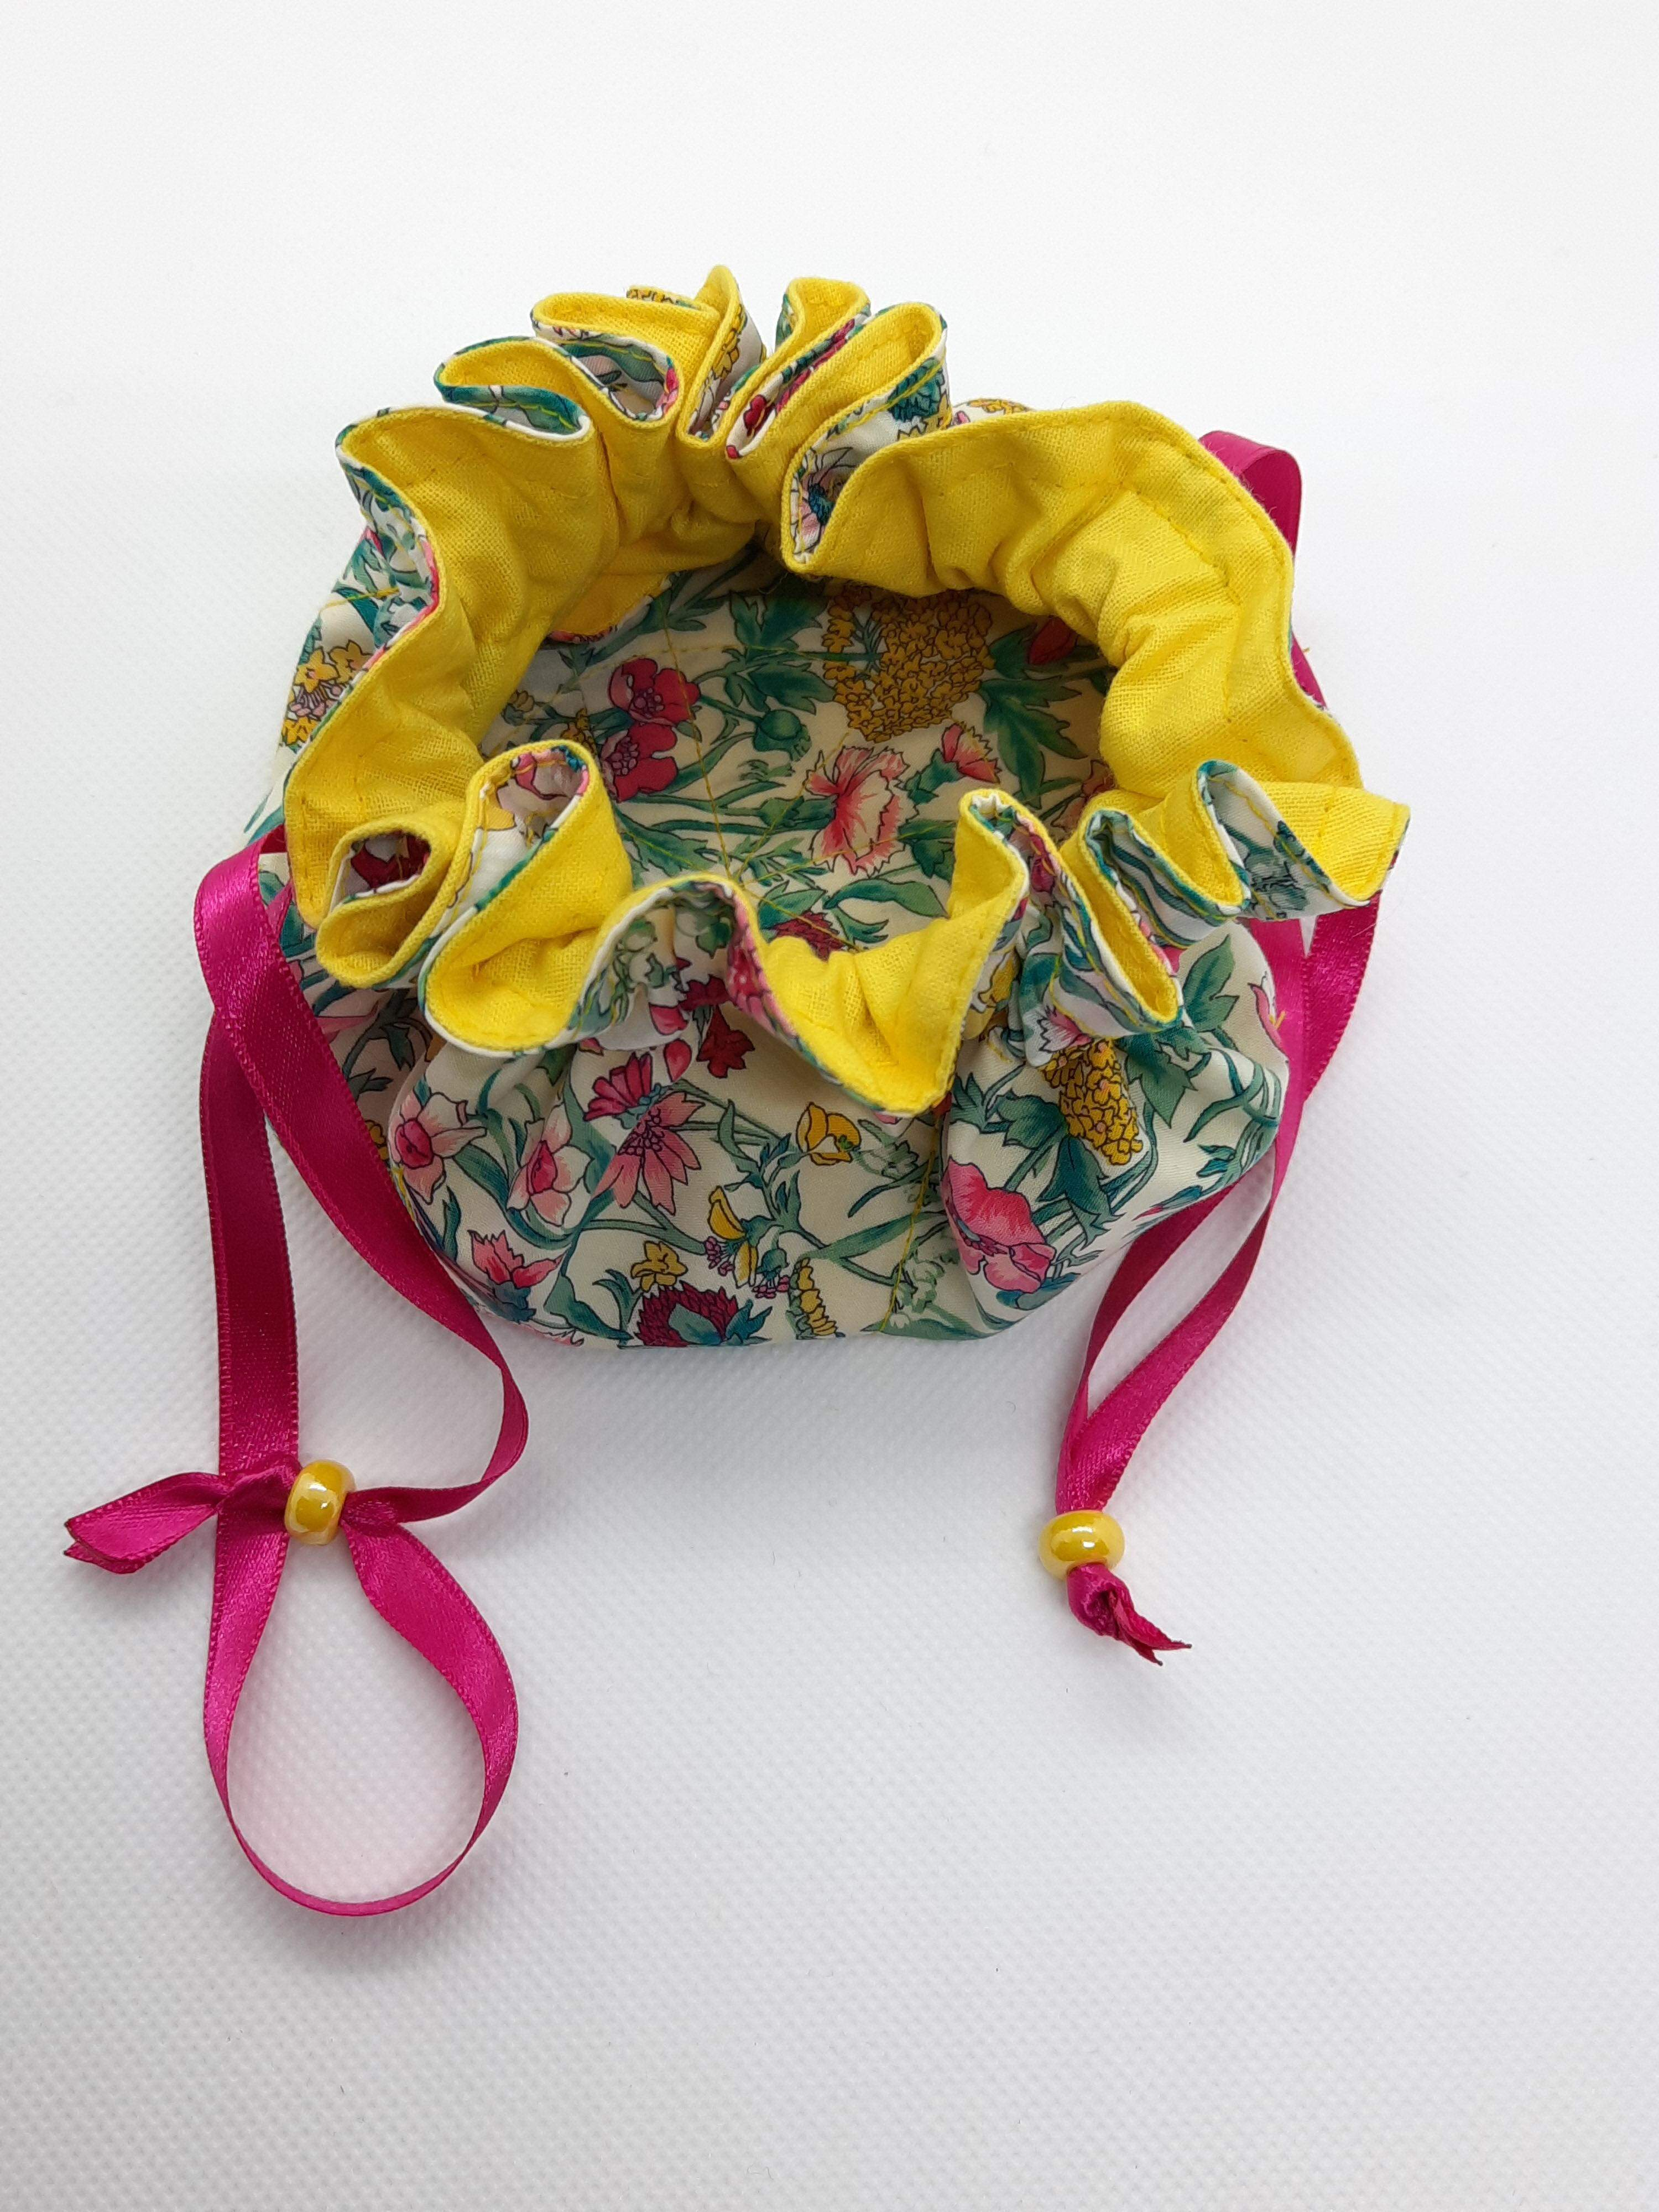 Jewellery Pouch - yellow lining, pink ribbon, yellow bead